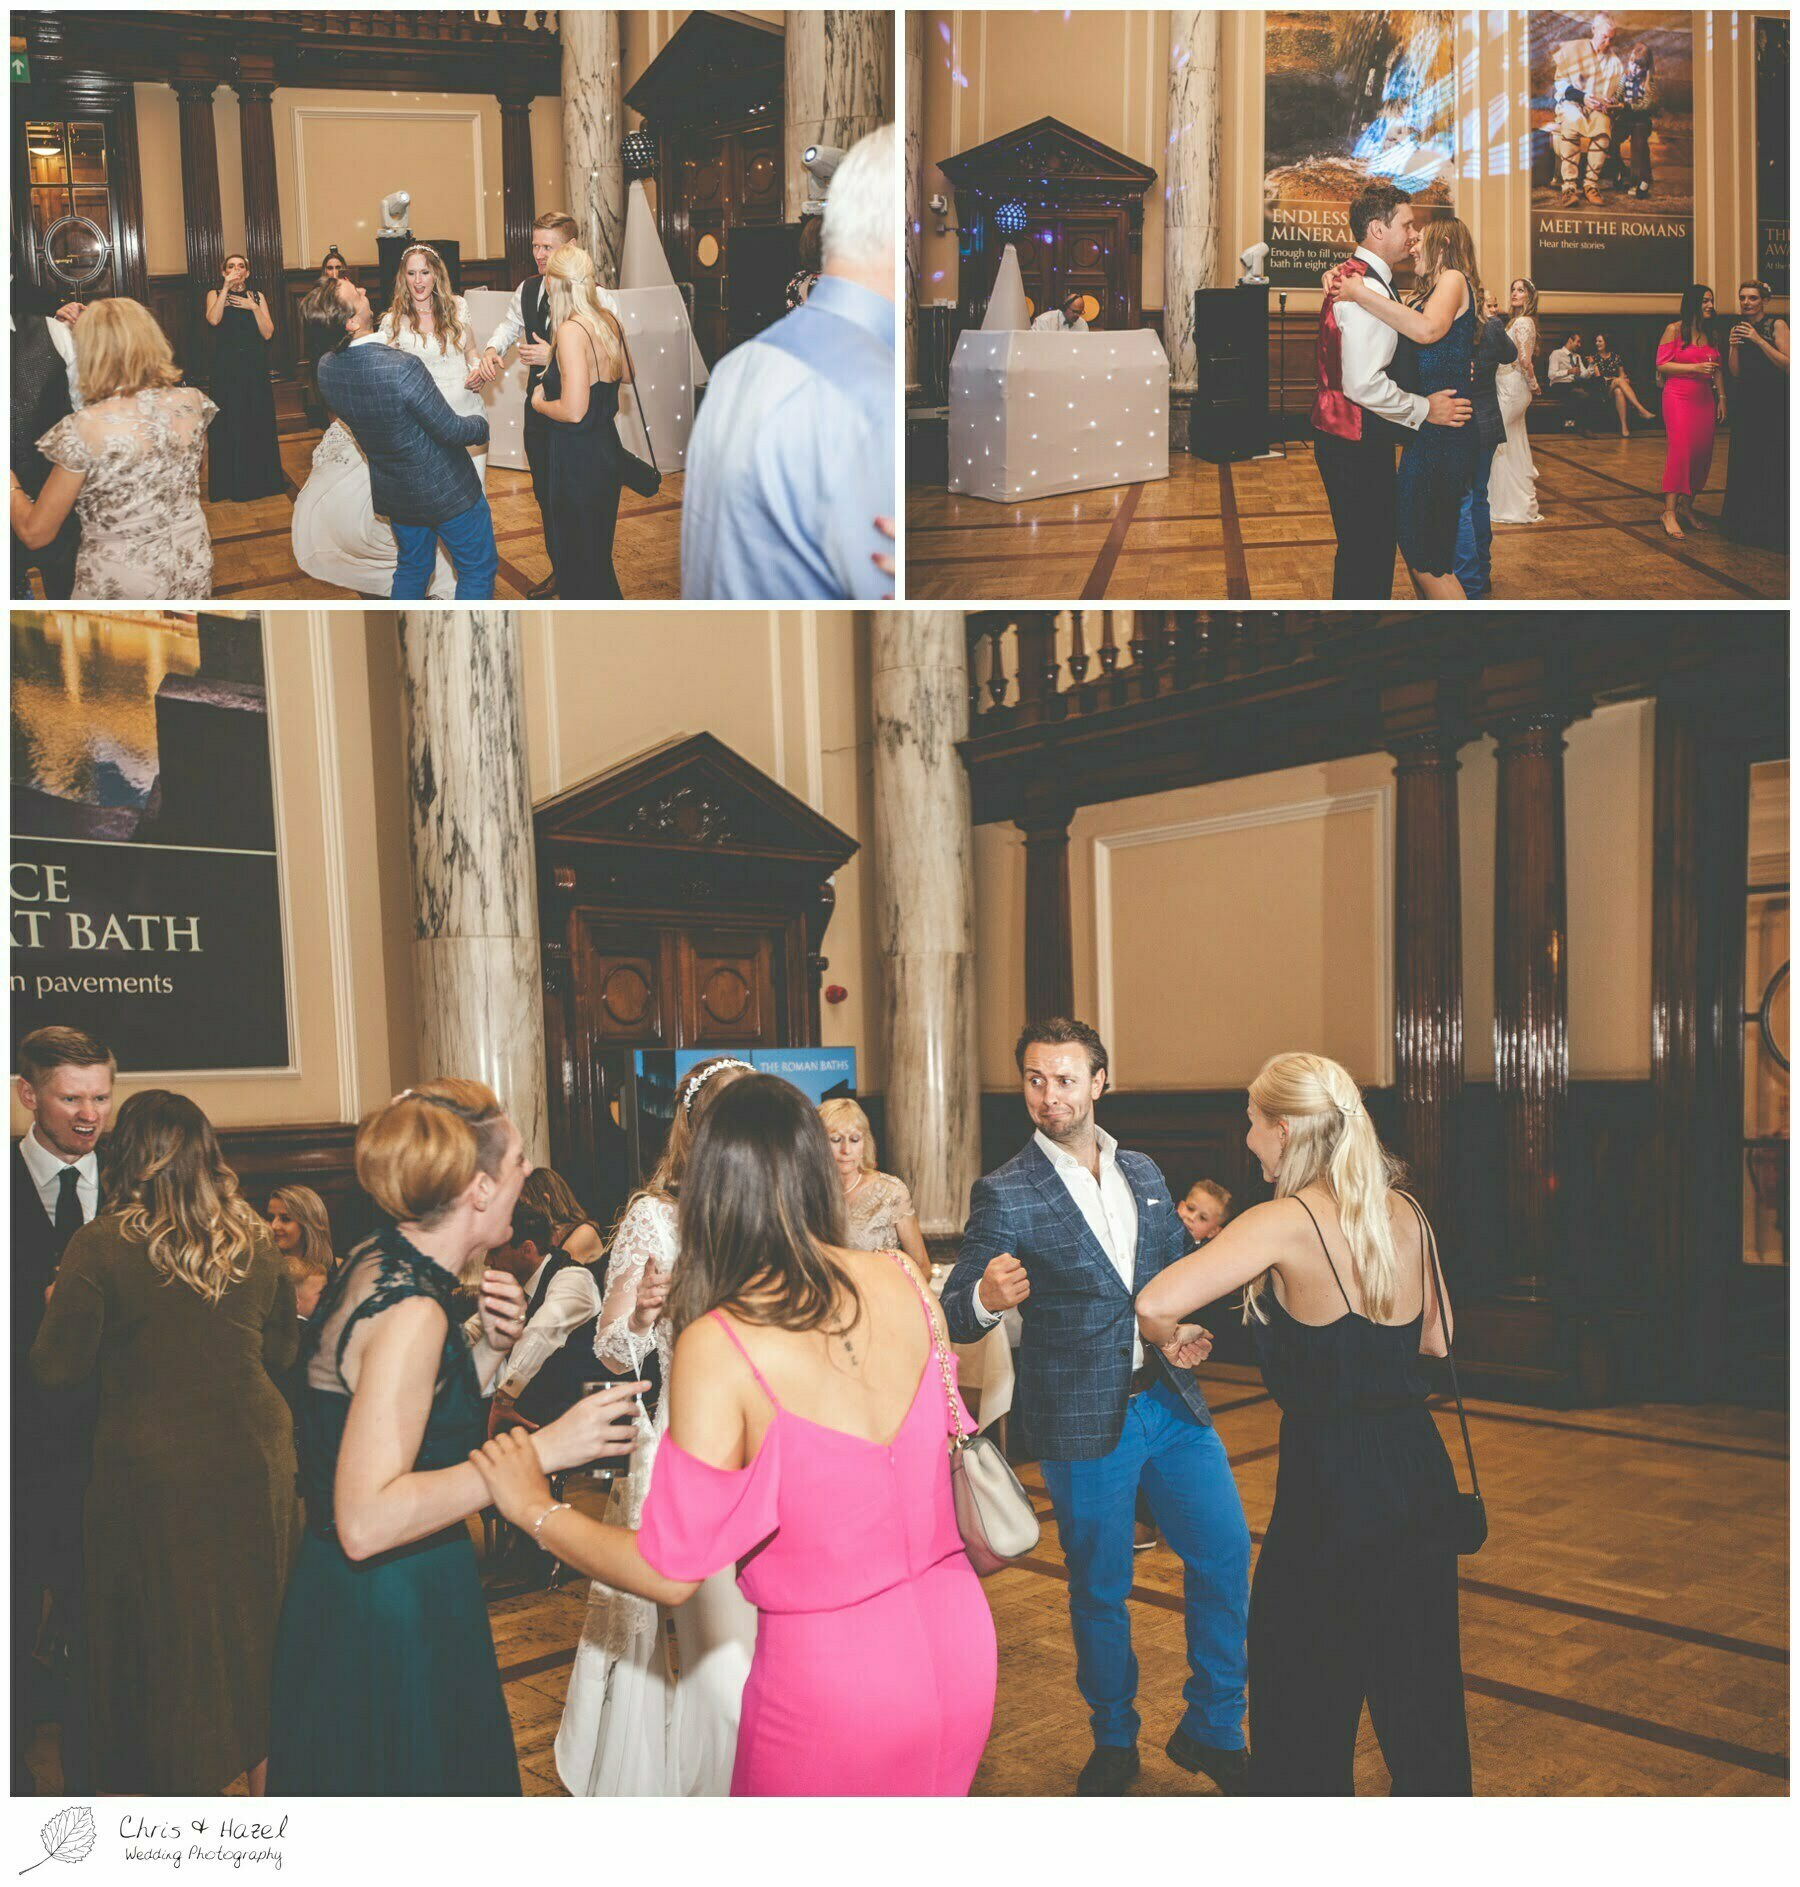 Guests dancing, wedding reception ball room at Roman Baths Pump Rooms, The Roman Baths Wedding Photography, Roman Baths Wedding Photographer, Wedding in Bath, Bath Wedding Day, documentary wedding photography, Chris and Hazel Wedding Photography Bath, Andy Frost Sian Upson